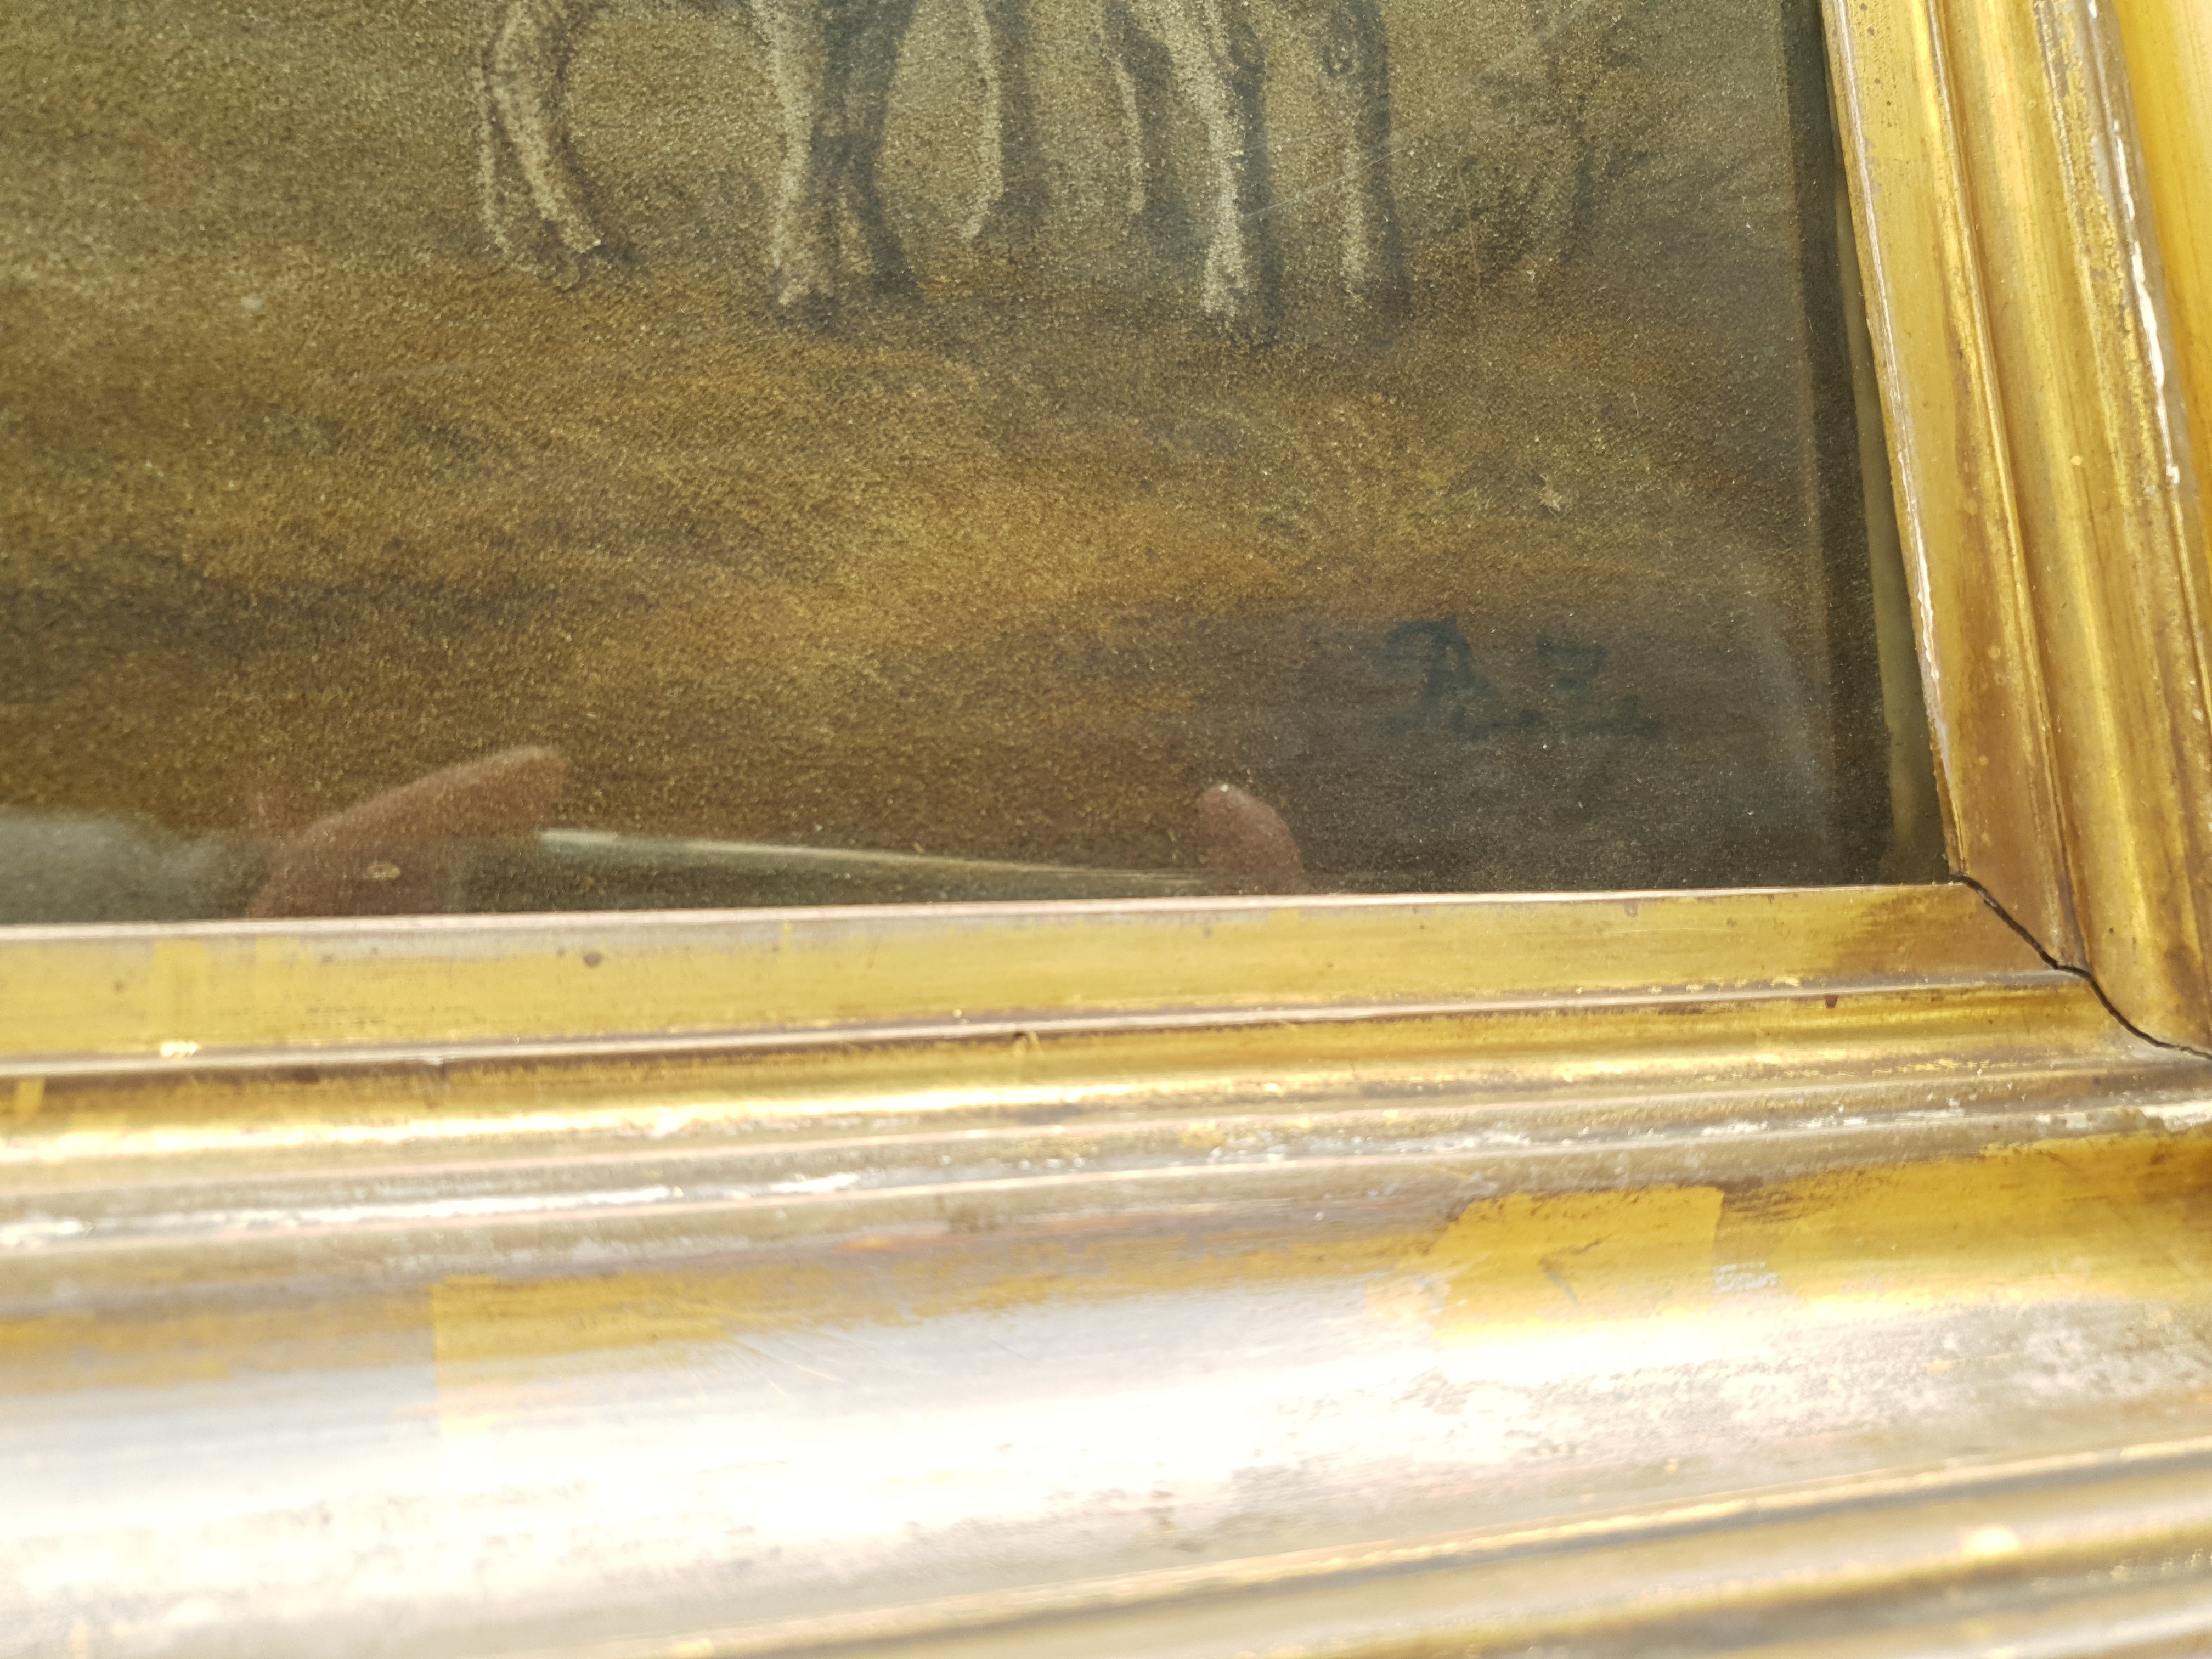 Benjamin Zobel (German/British 1762-1830): Animals in the Farmyard, 'Marmotinto' sand picture signed - Image 3 of 3